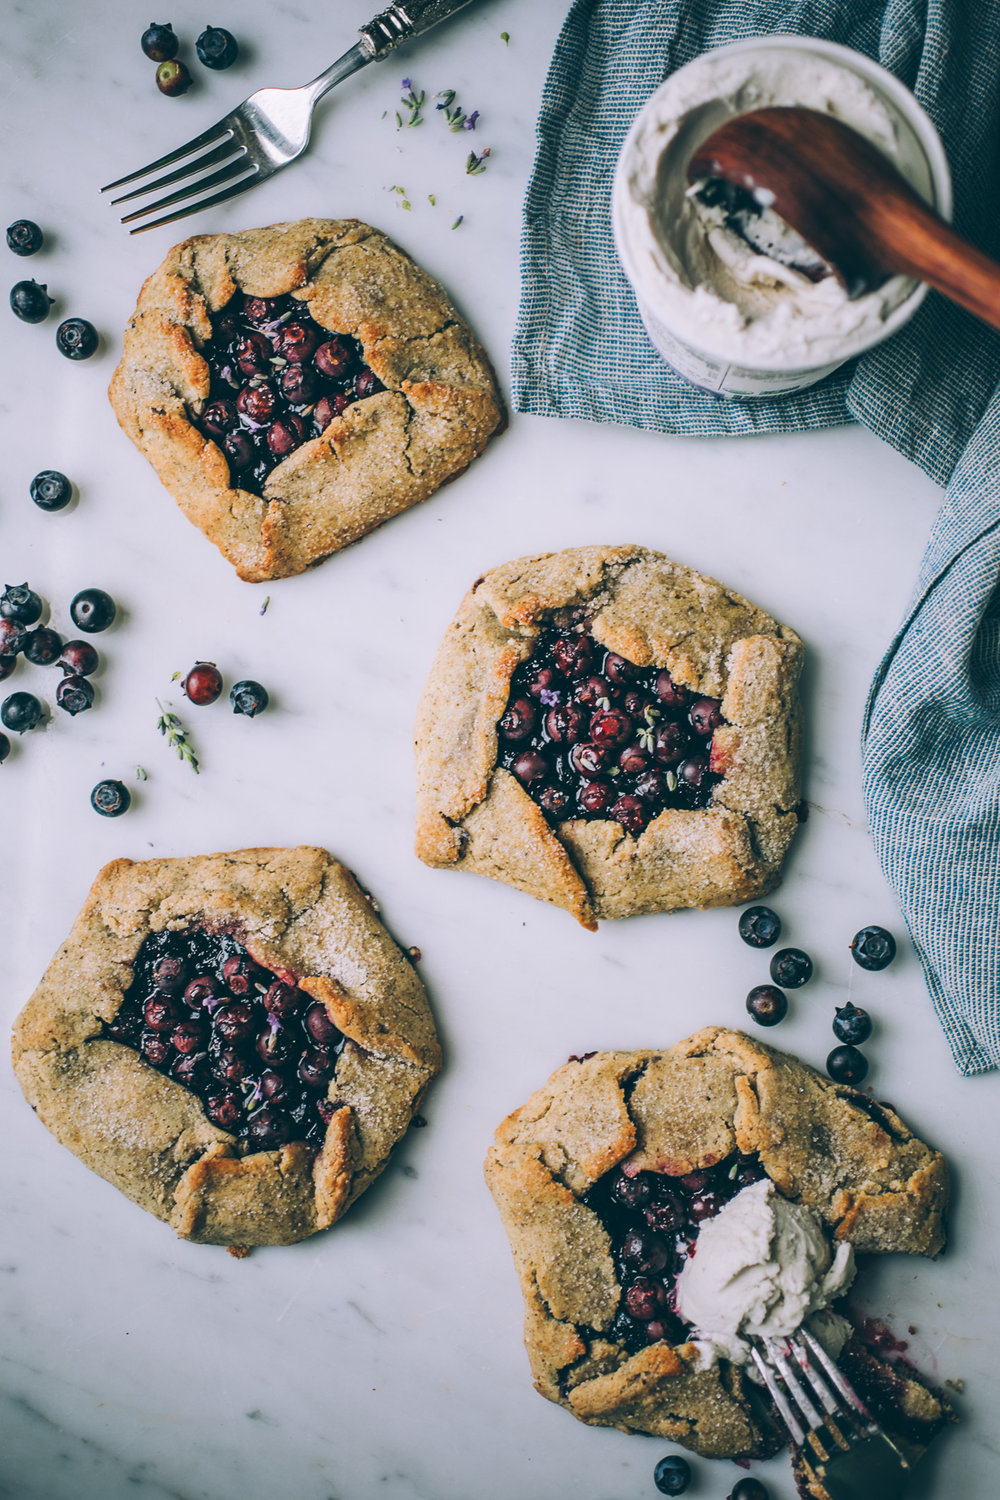 grain free blueberry galette recipe (dairy free)